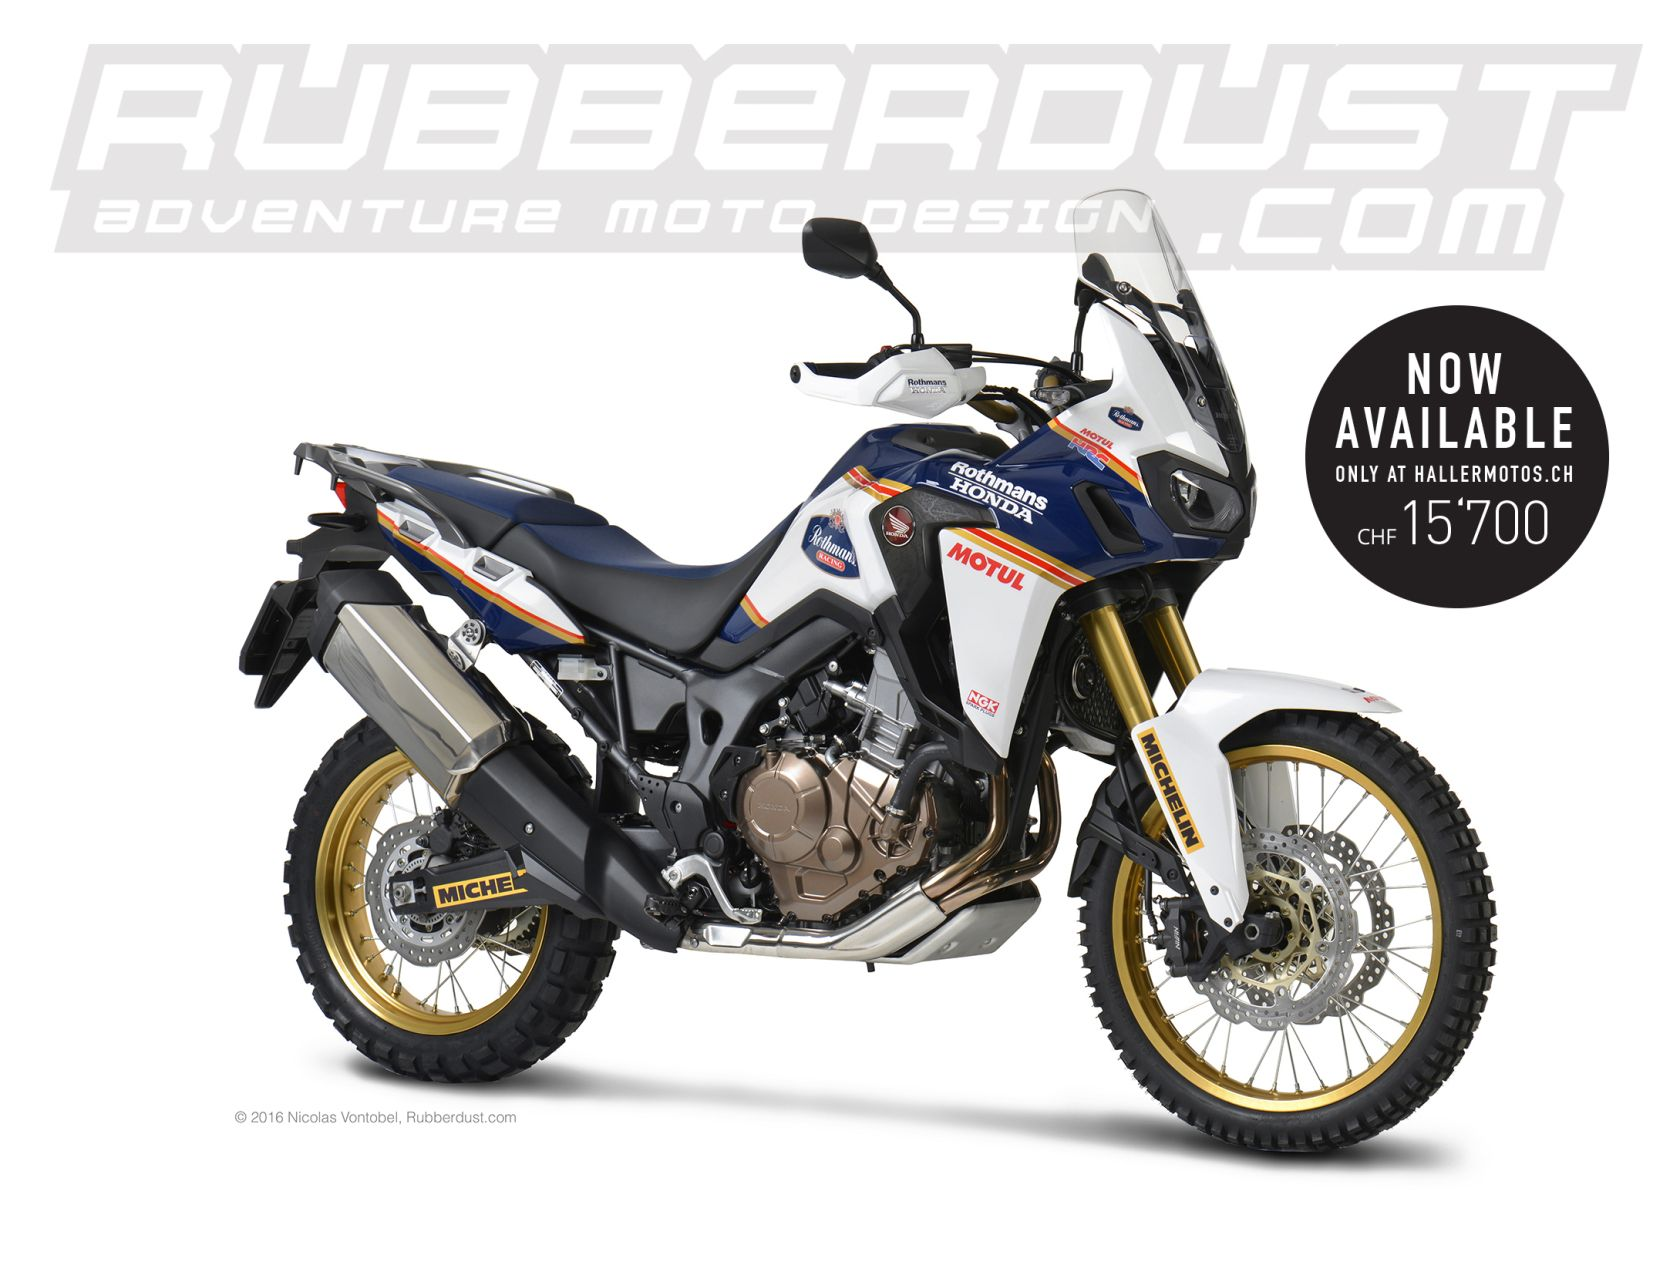 Africa Twin CRF 1000L Rothmans Website